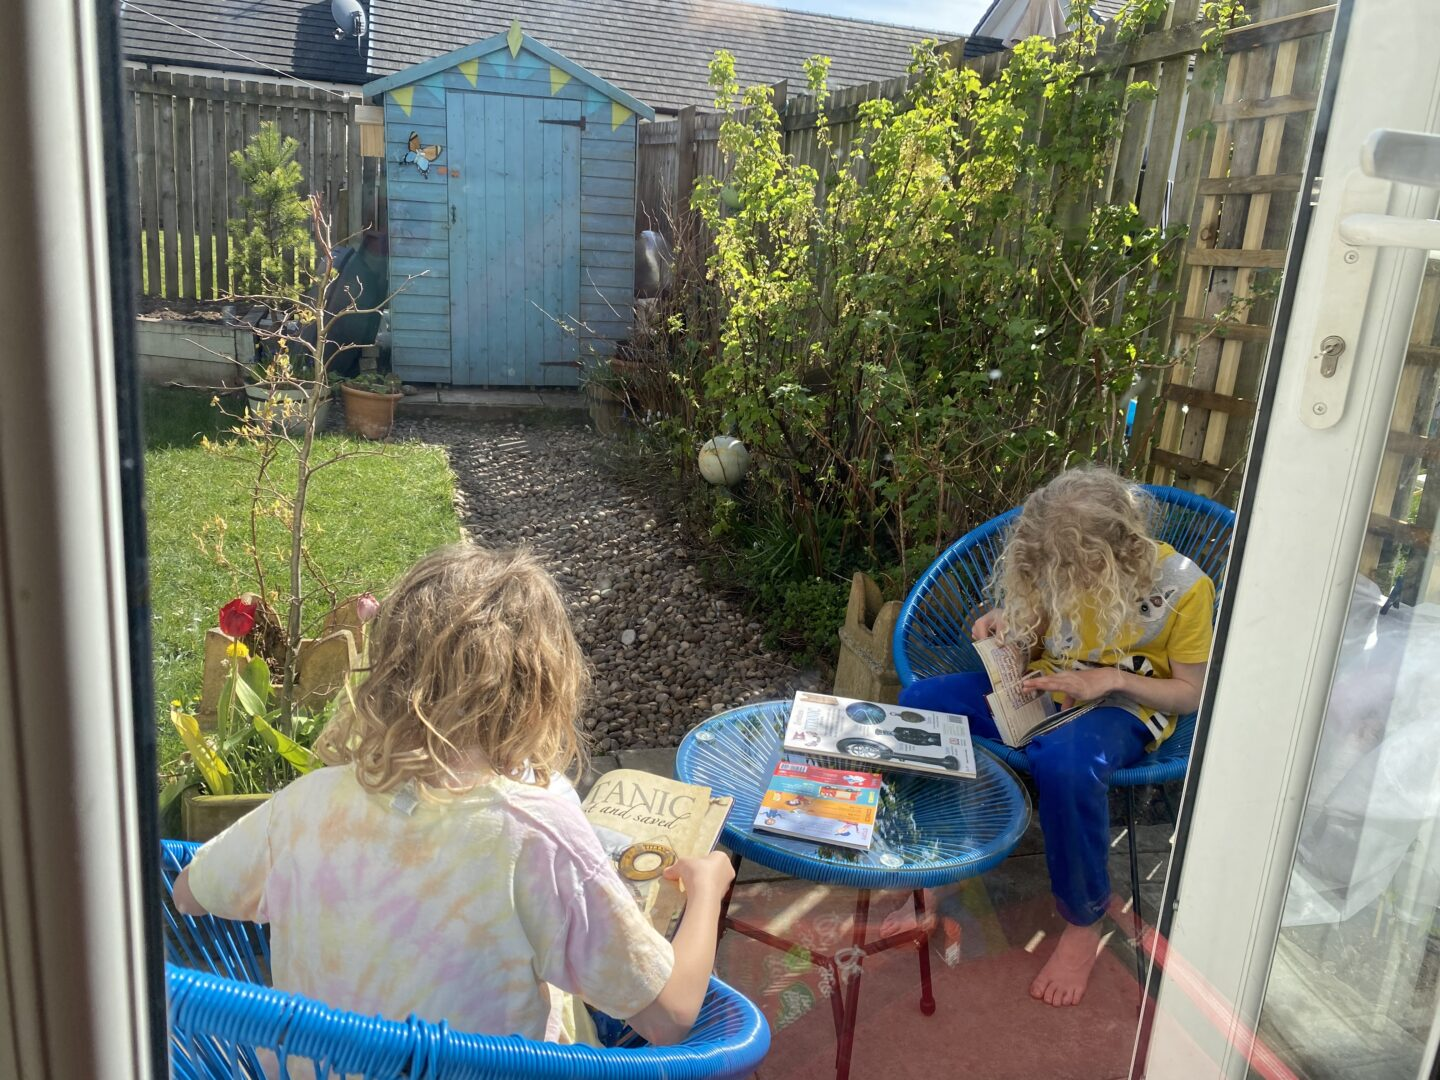 children reading library books about the Titanic in the garden